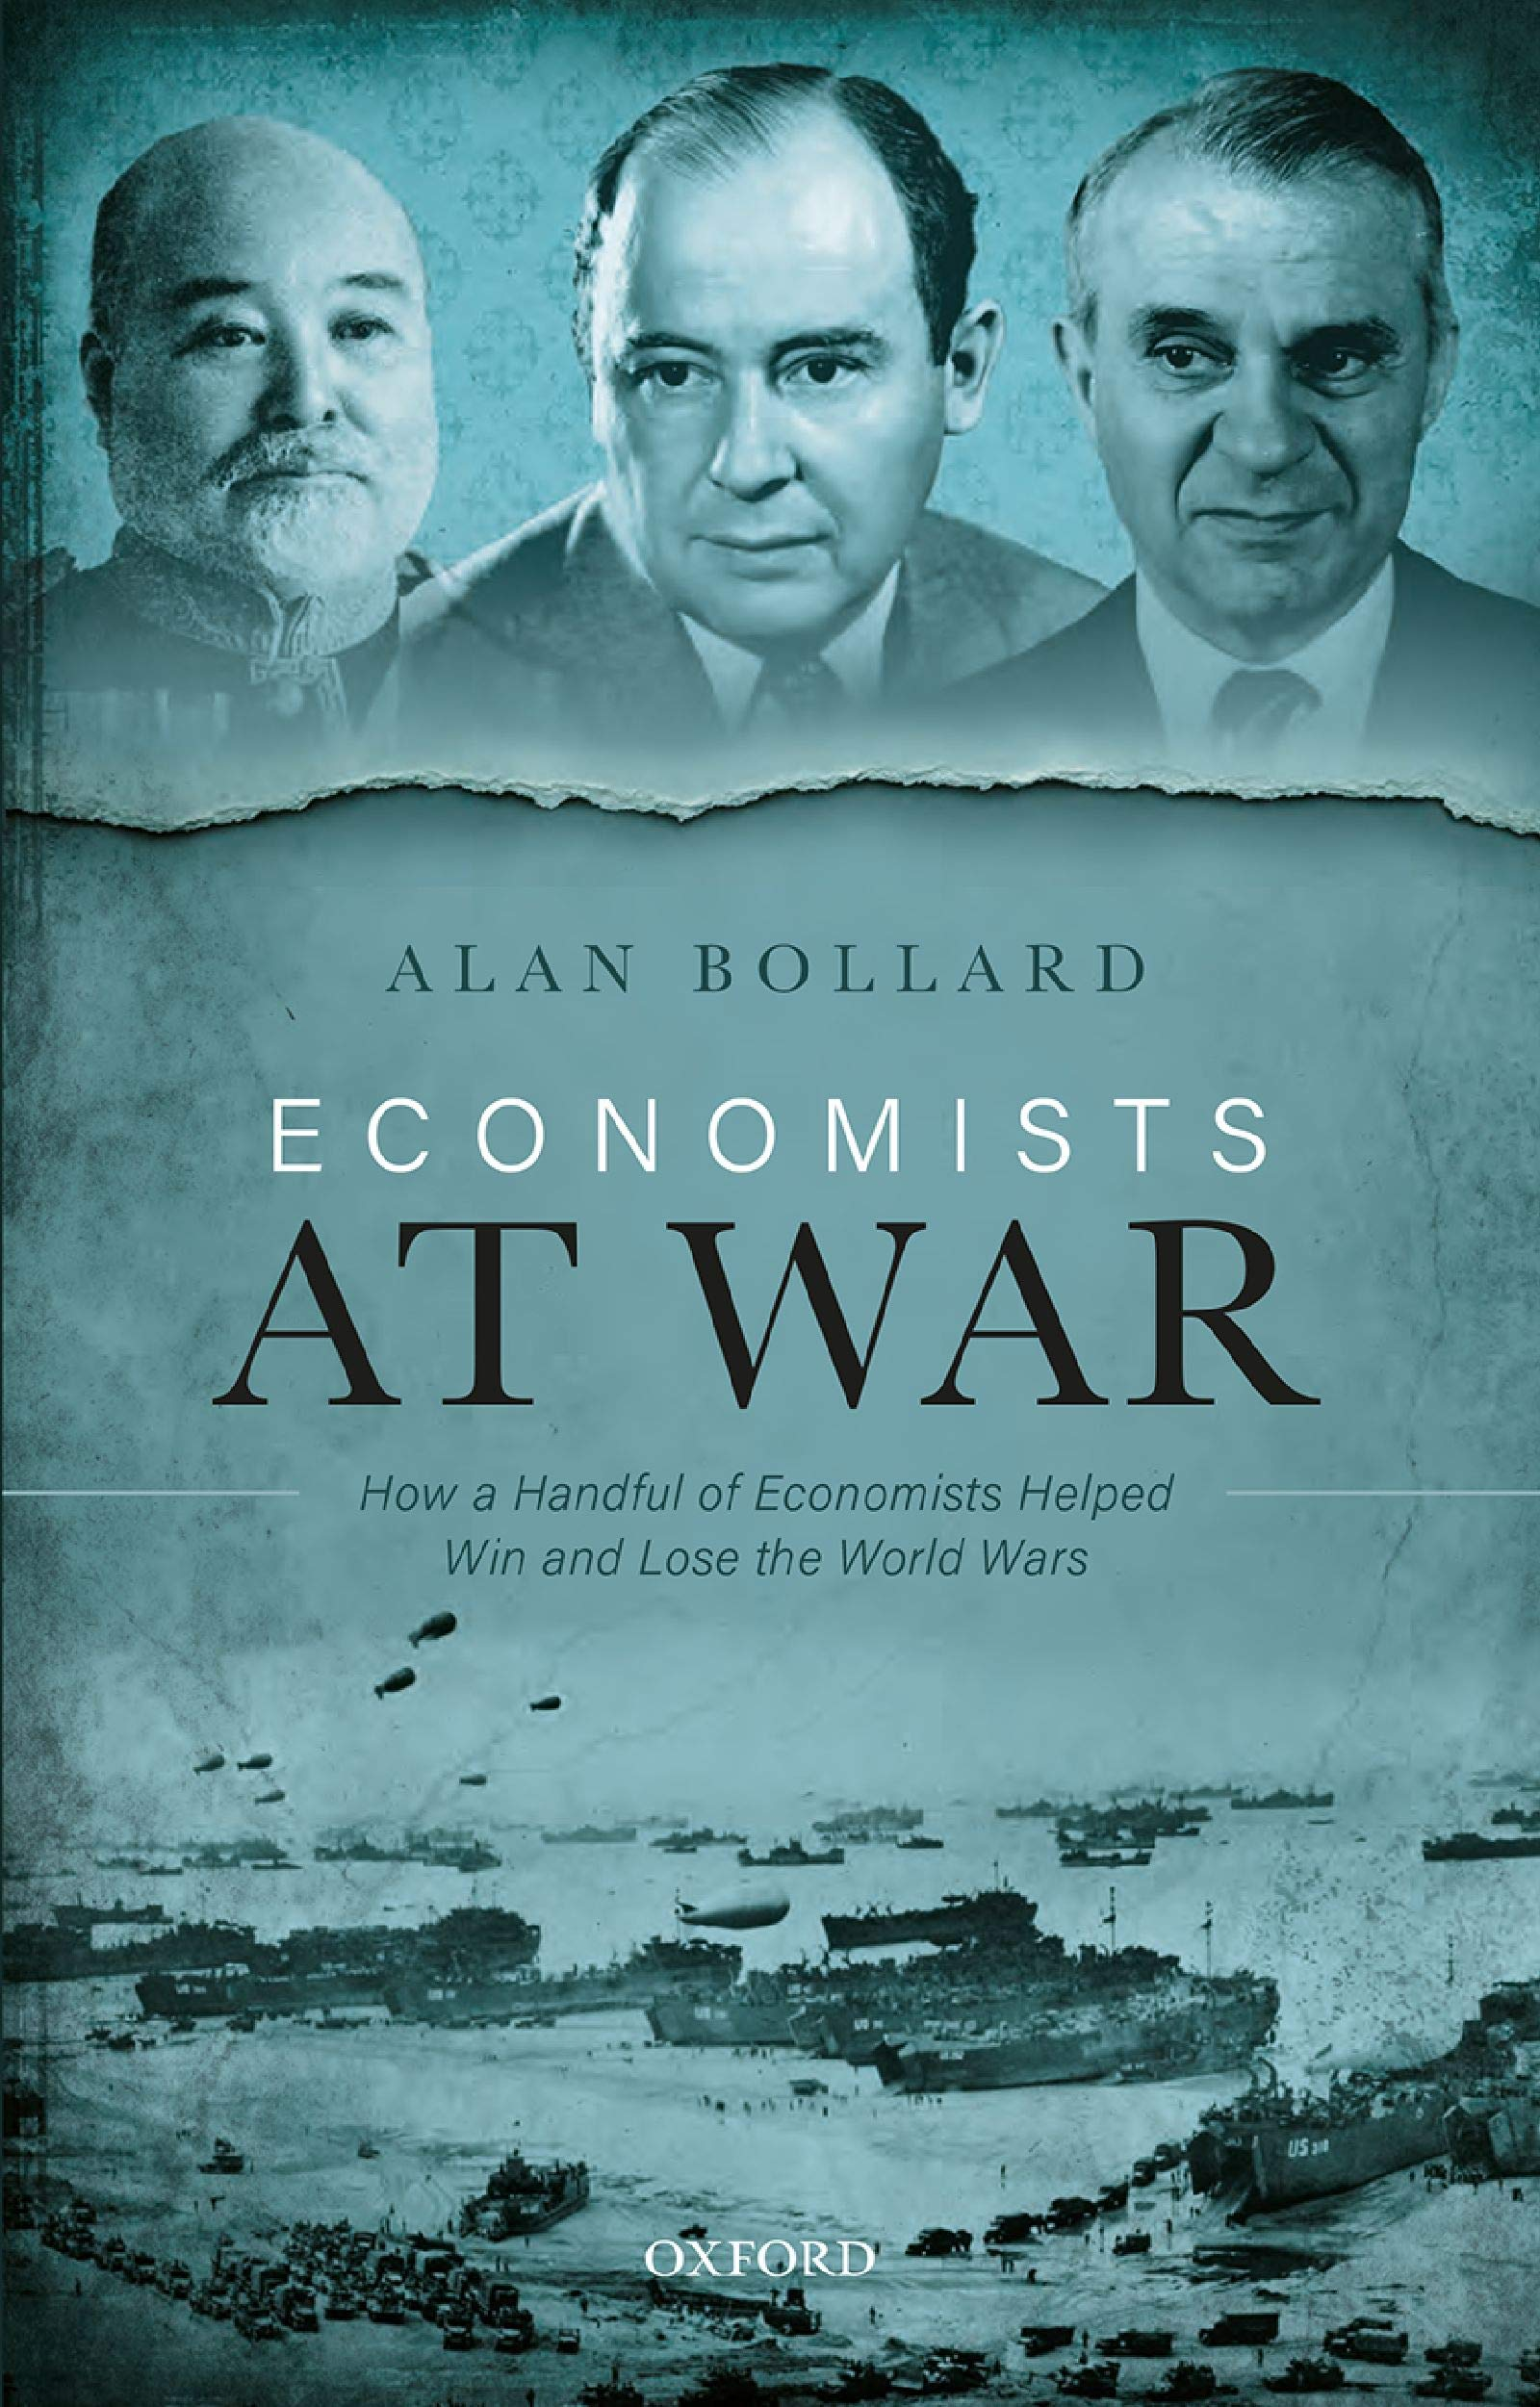 Economists at War: How a Handful of Economists Helped Win and Lose the World Wars